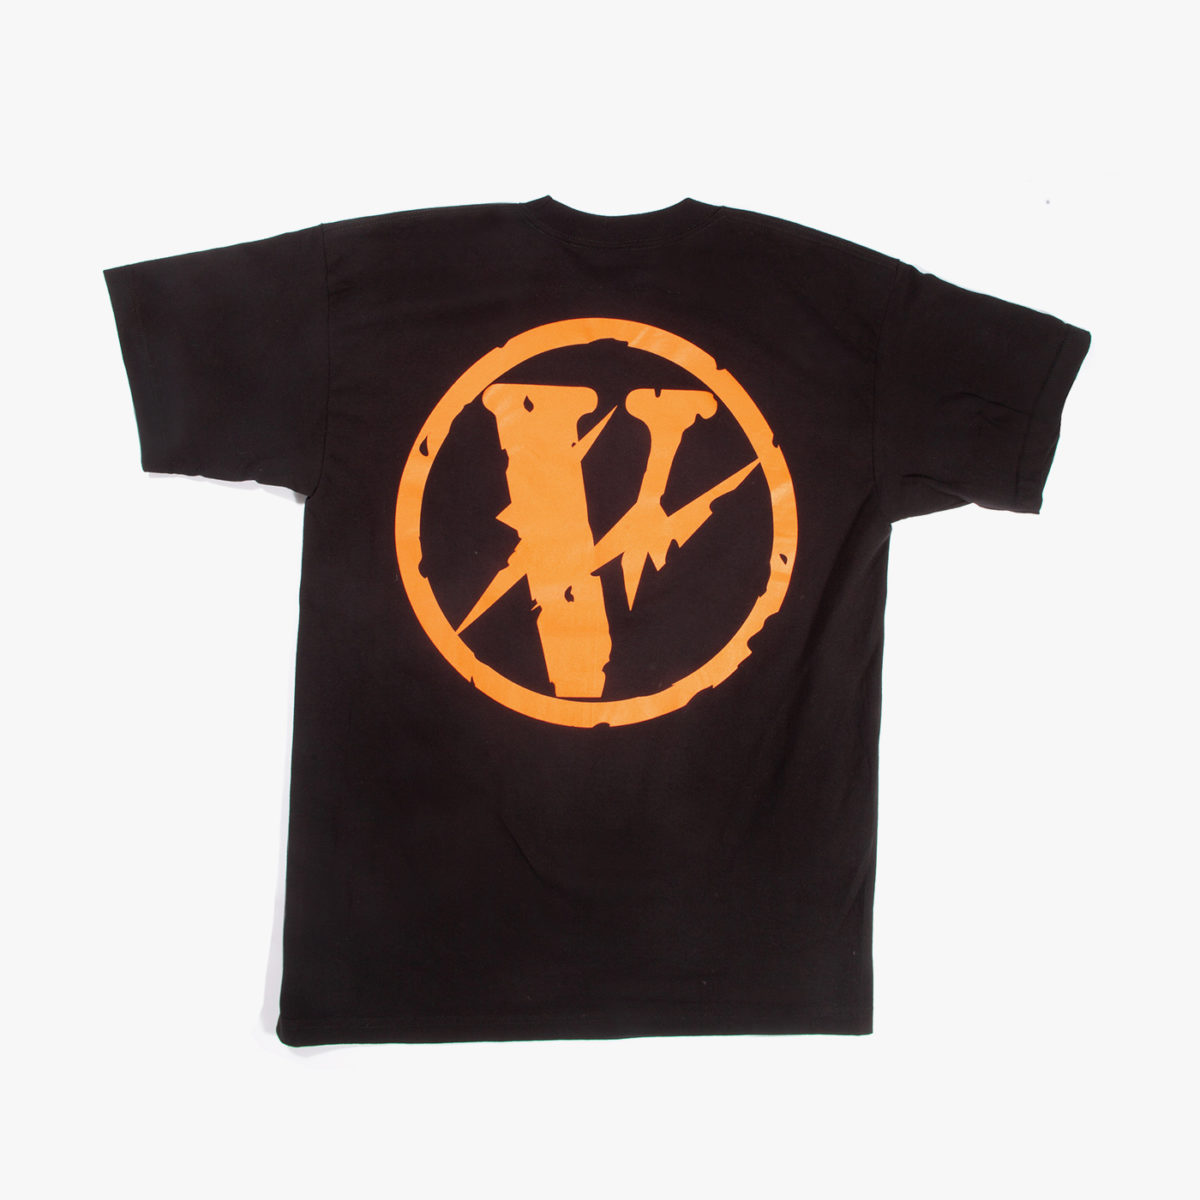 7b377ea19 Vlone x Fragment Friends Logo Tee - PlugMePlease | PlugMePlease